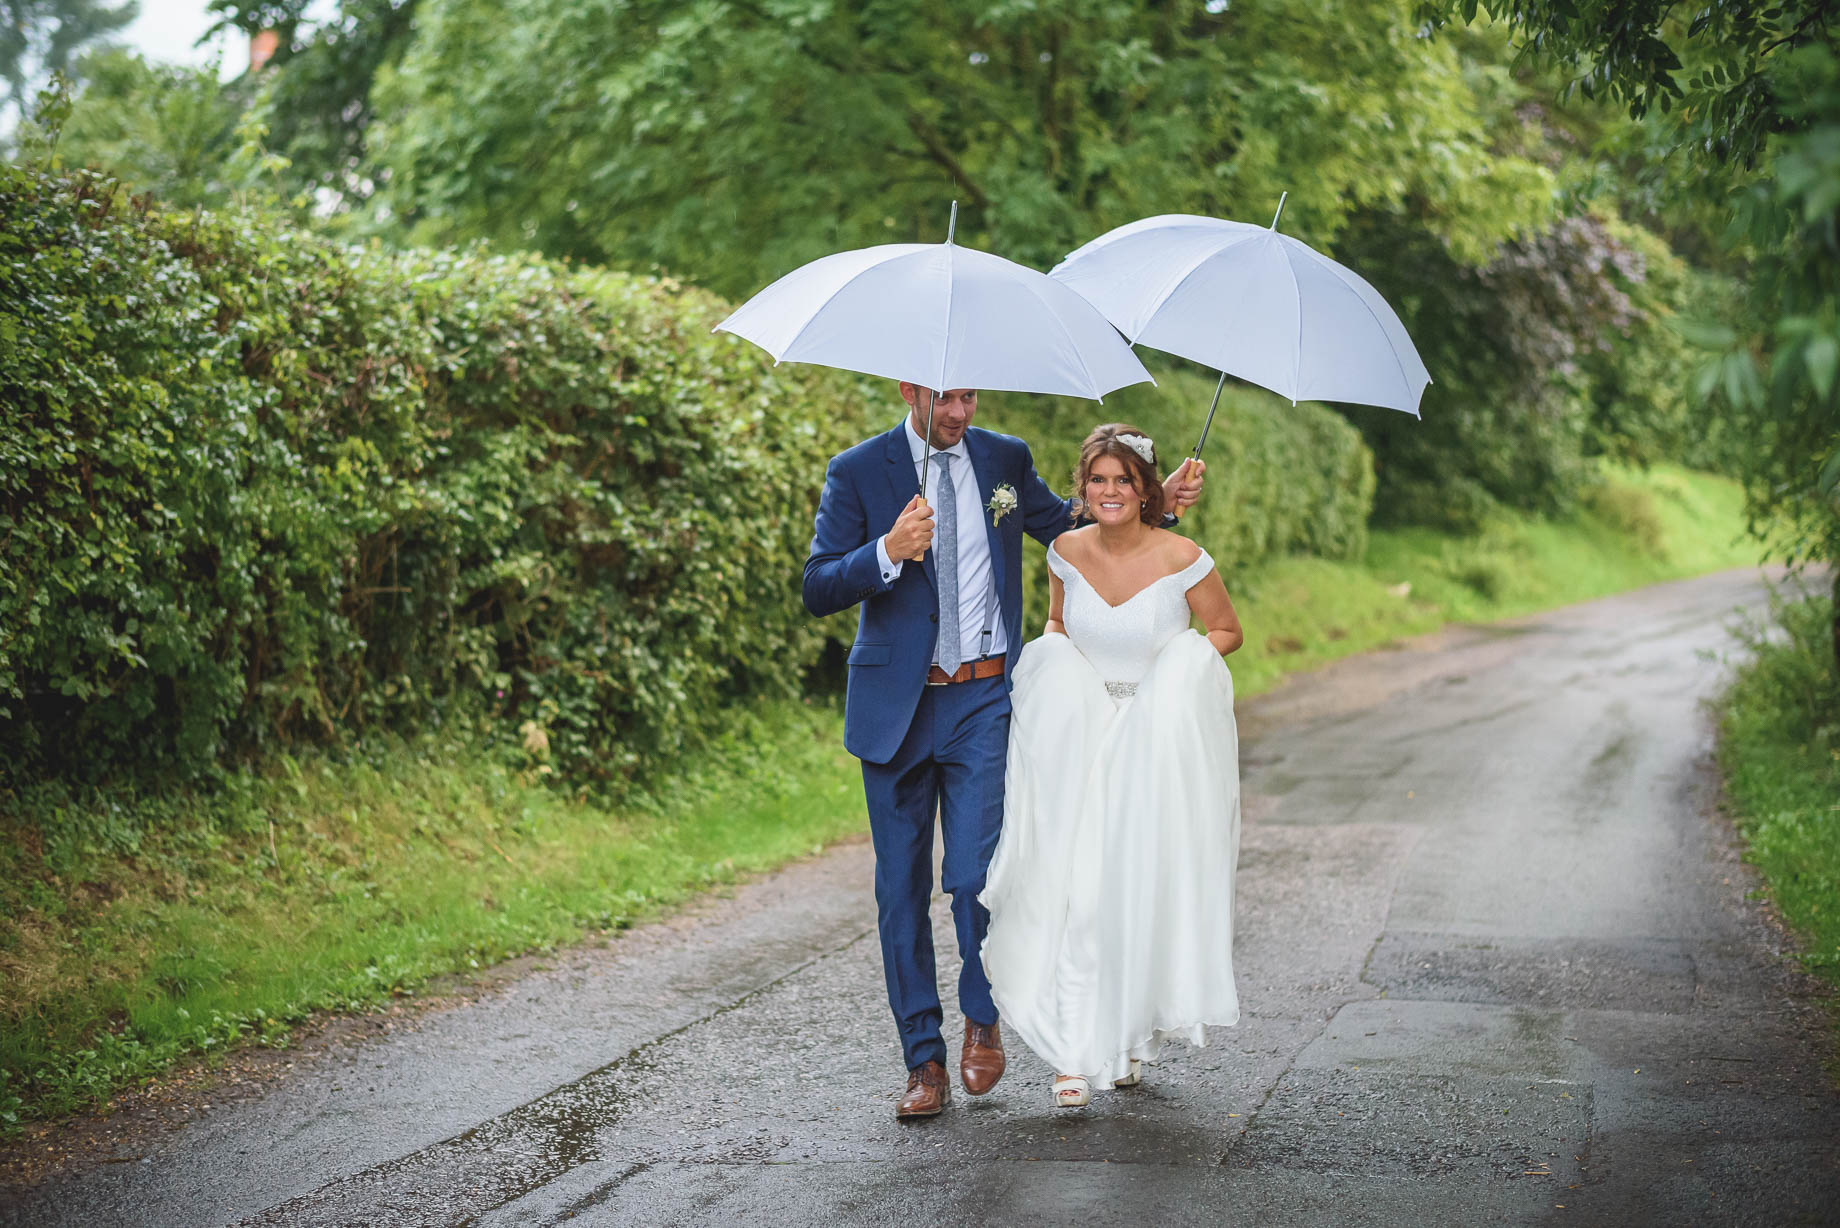 Hampshire wedding photography in Romsey - Guy Collier Photography - Daisy and Jools (188 of 204)